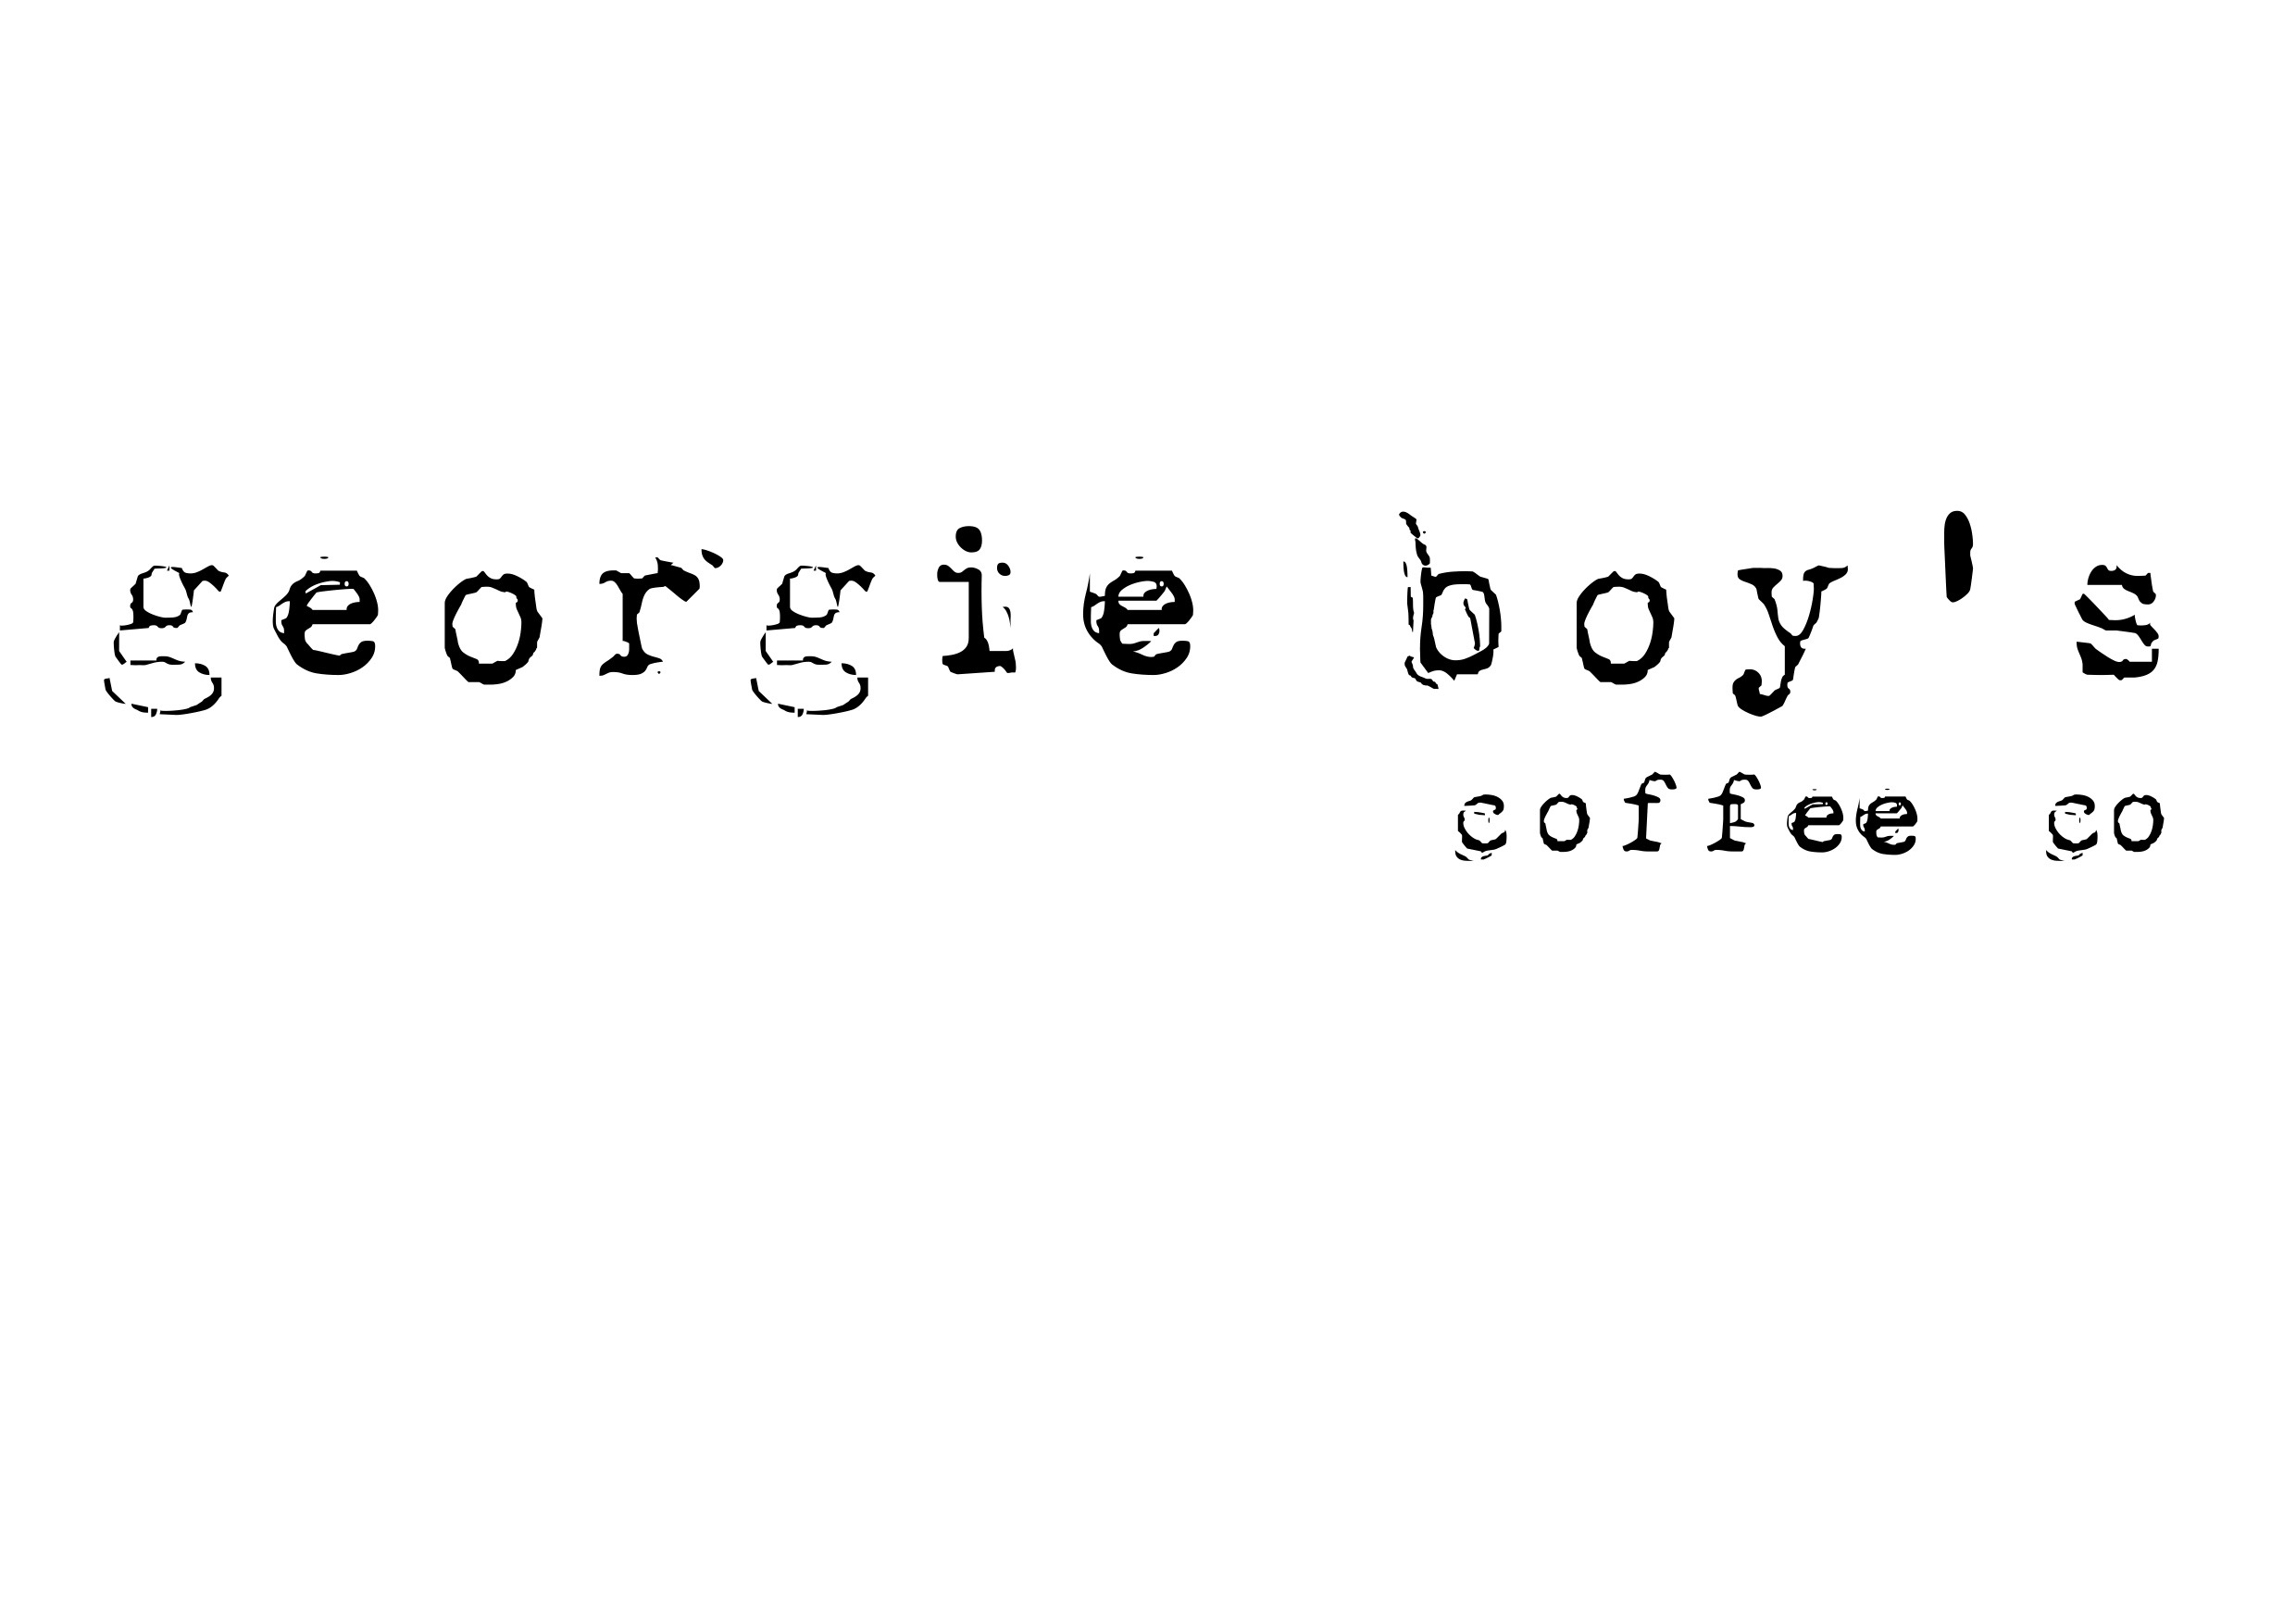 georgie boys coffee co